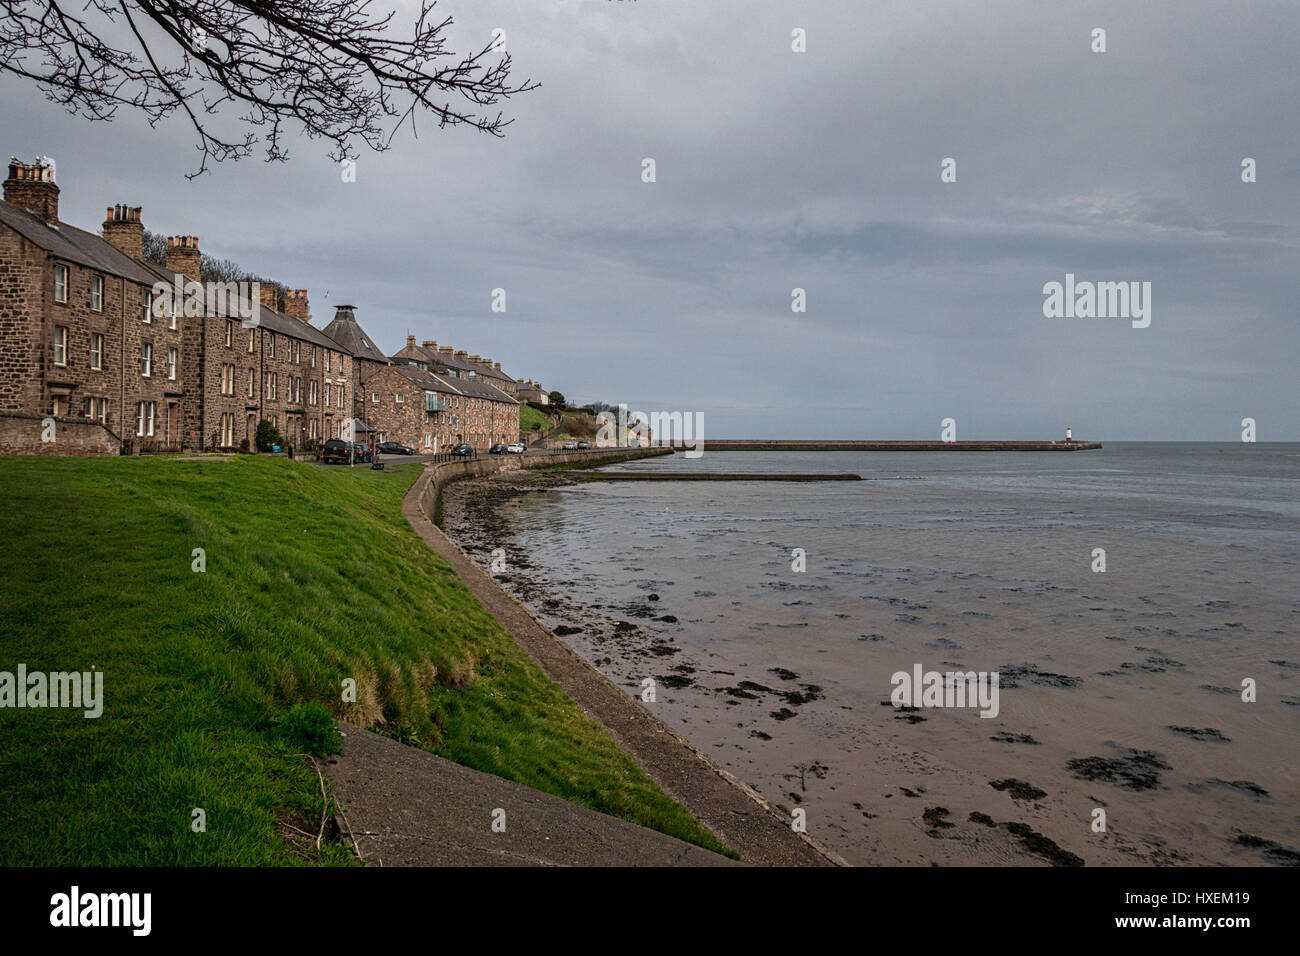 Pittore Inglese Lowry Lowry Painter Immagini Lowry Painter Fotos Stock Alamy